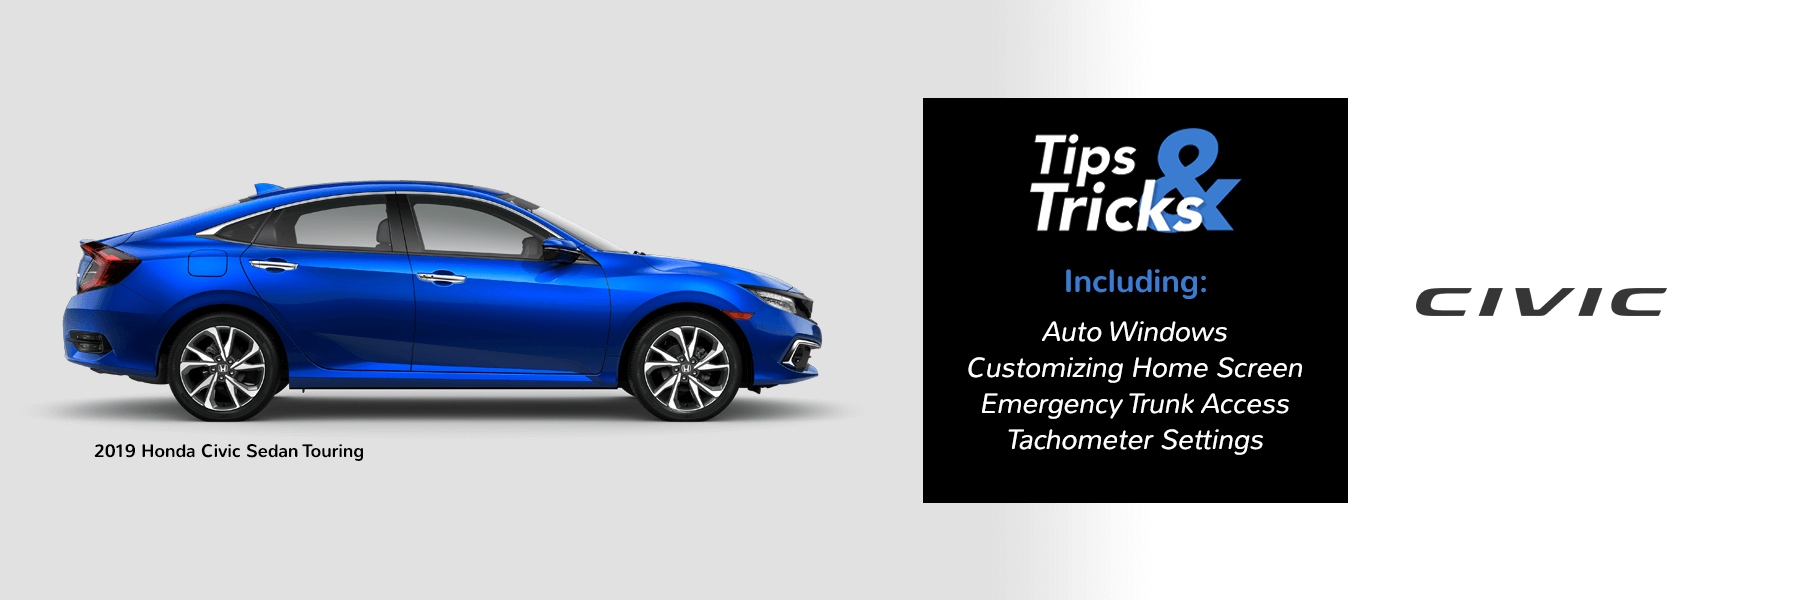 2019 Honda Civic Tips and Tricks Slider